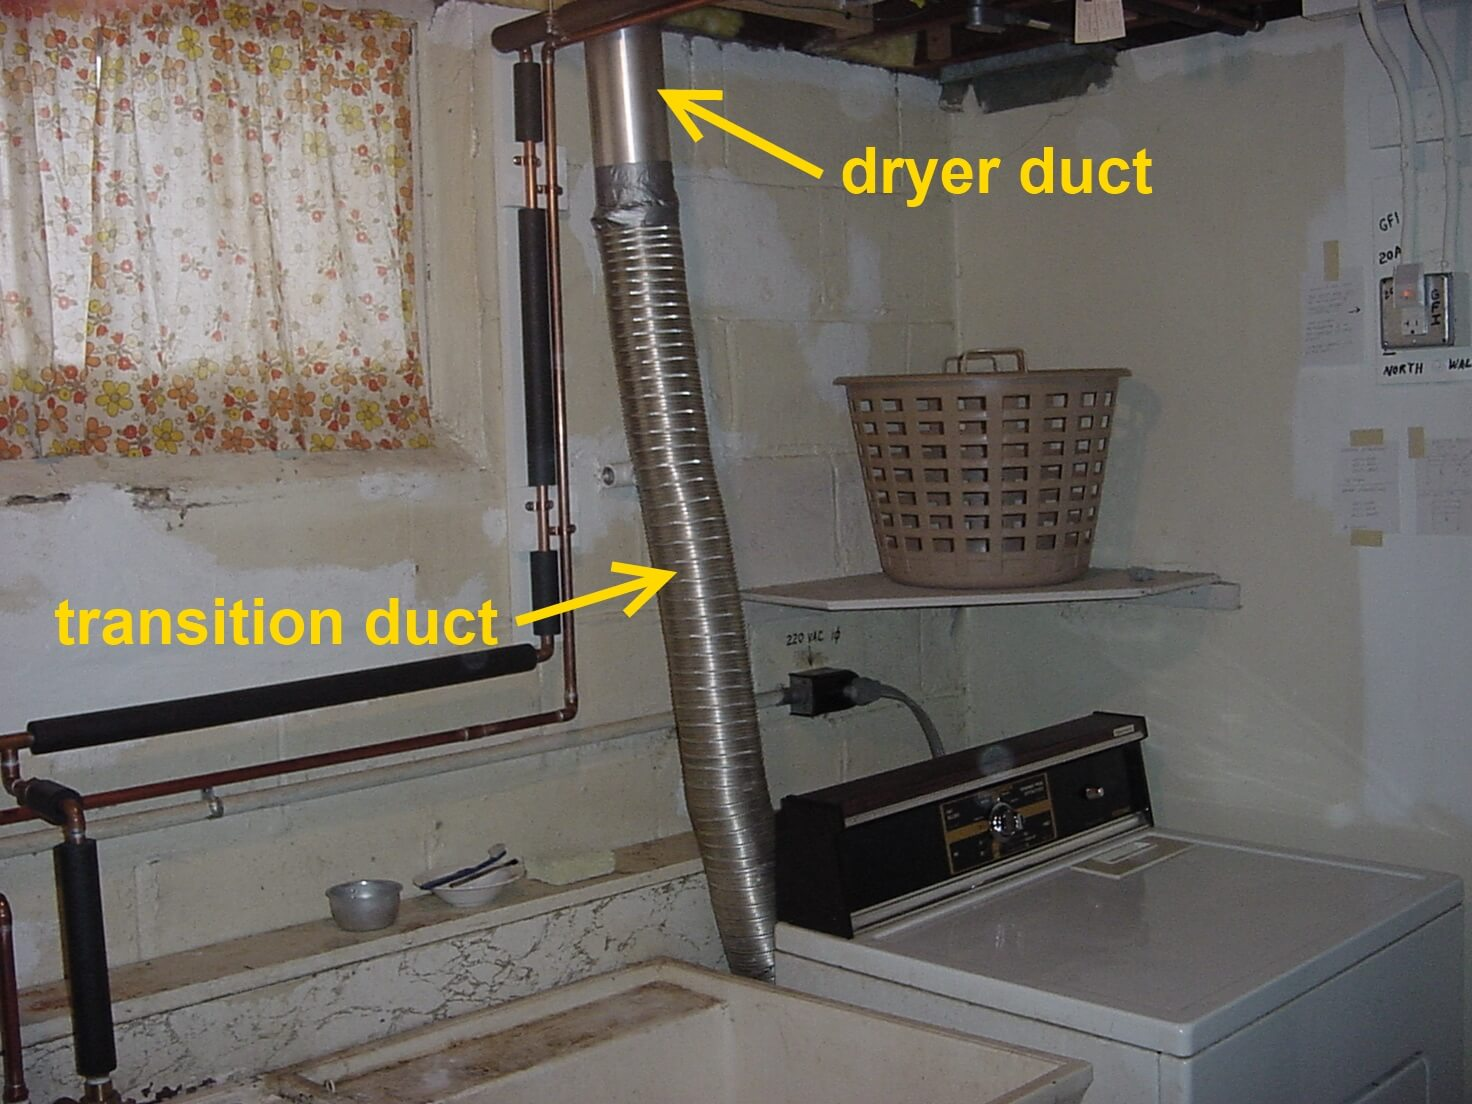 clothes dryer safety is about installation and maintenance